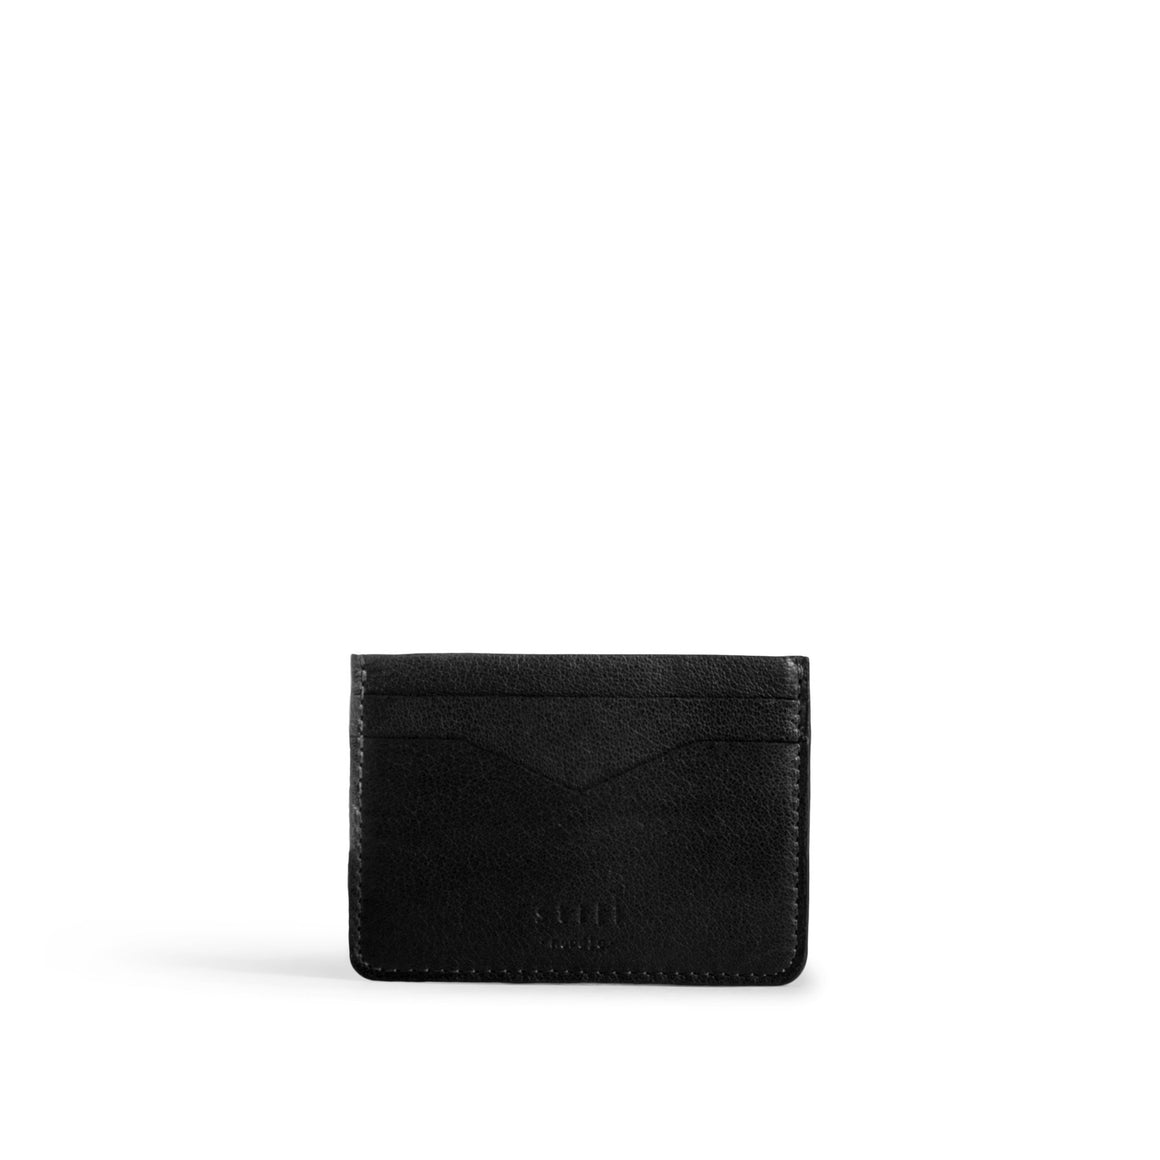 Still Nordic Heat Credit Card Holder